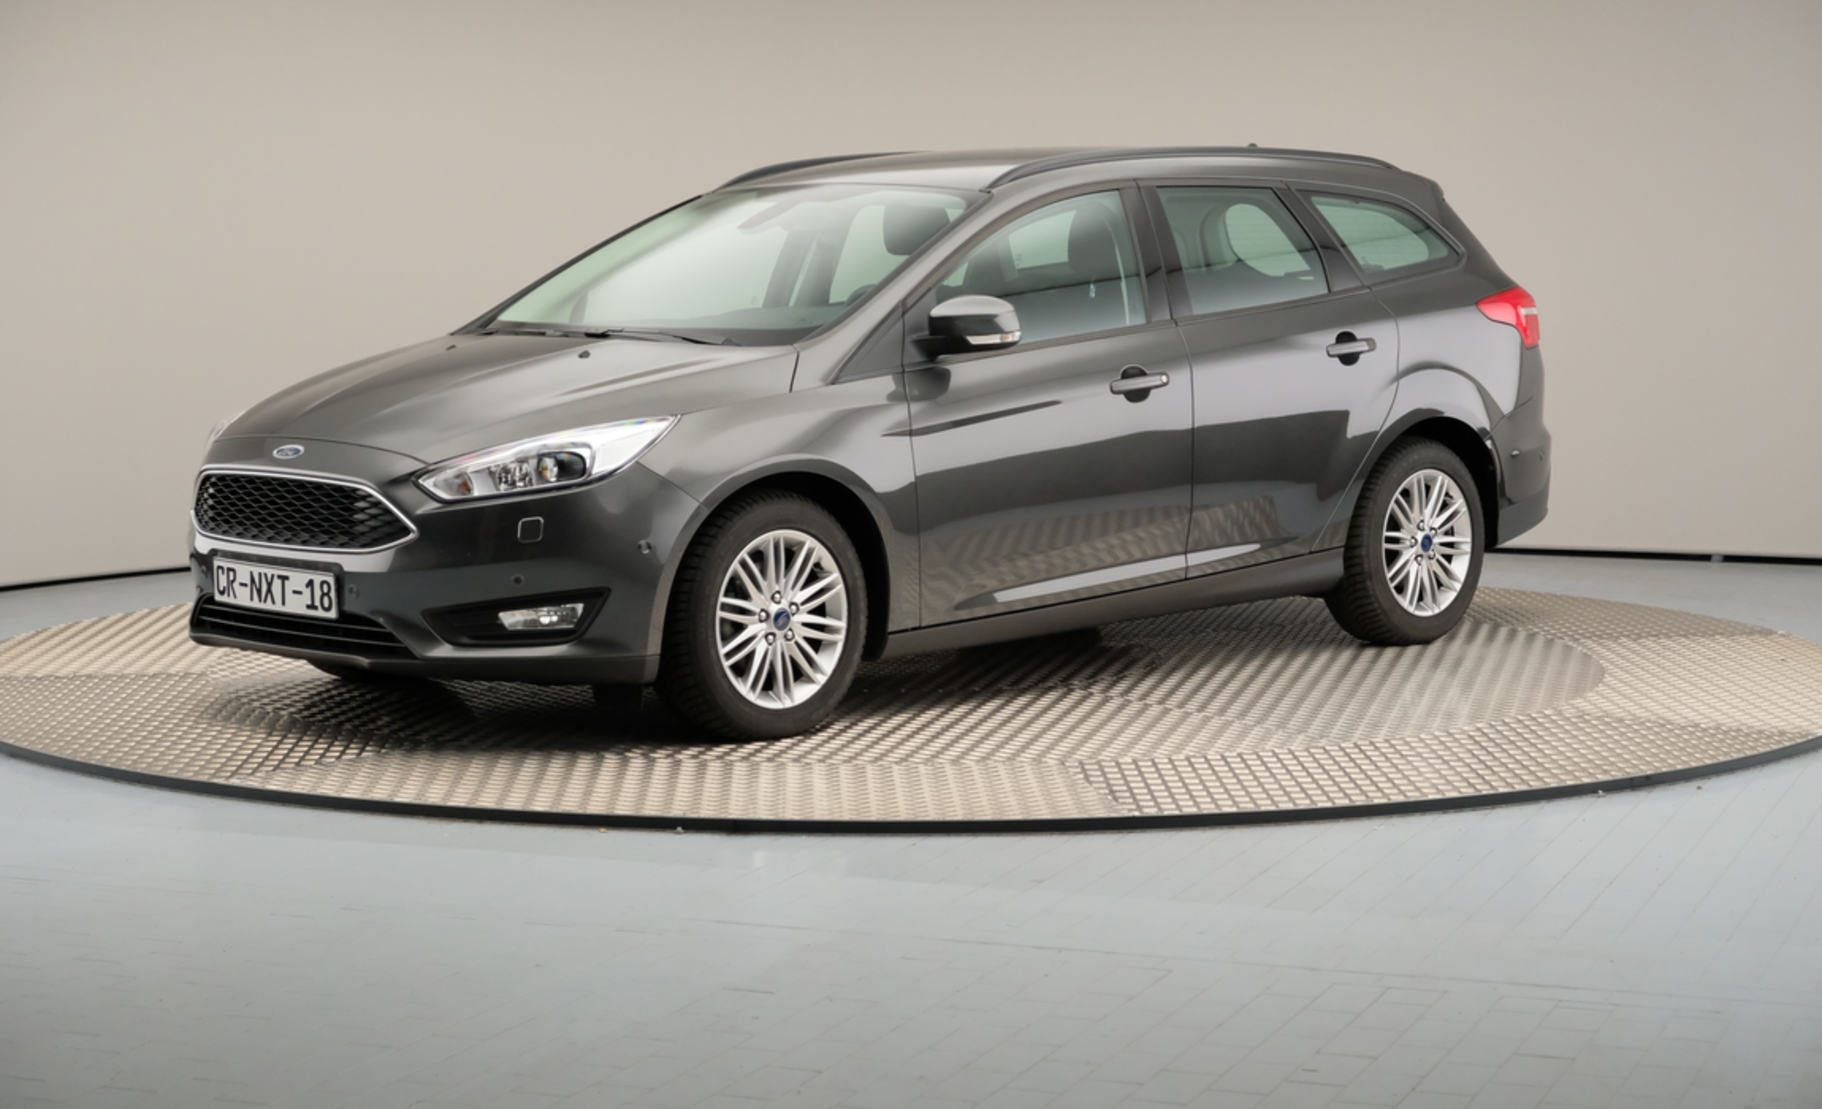 Ford Focus Turnier 1.5 TDCi DPF Start-Stopp-System Business detail1